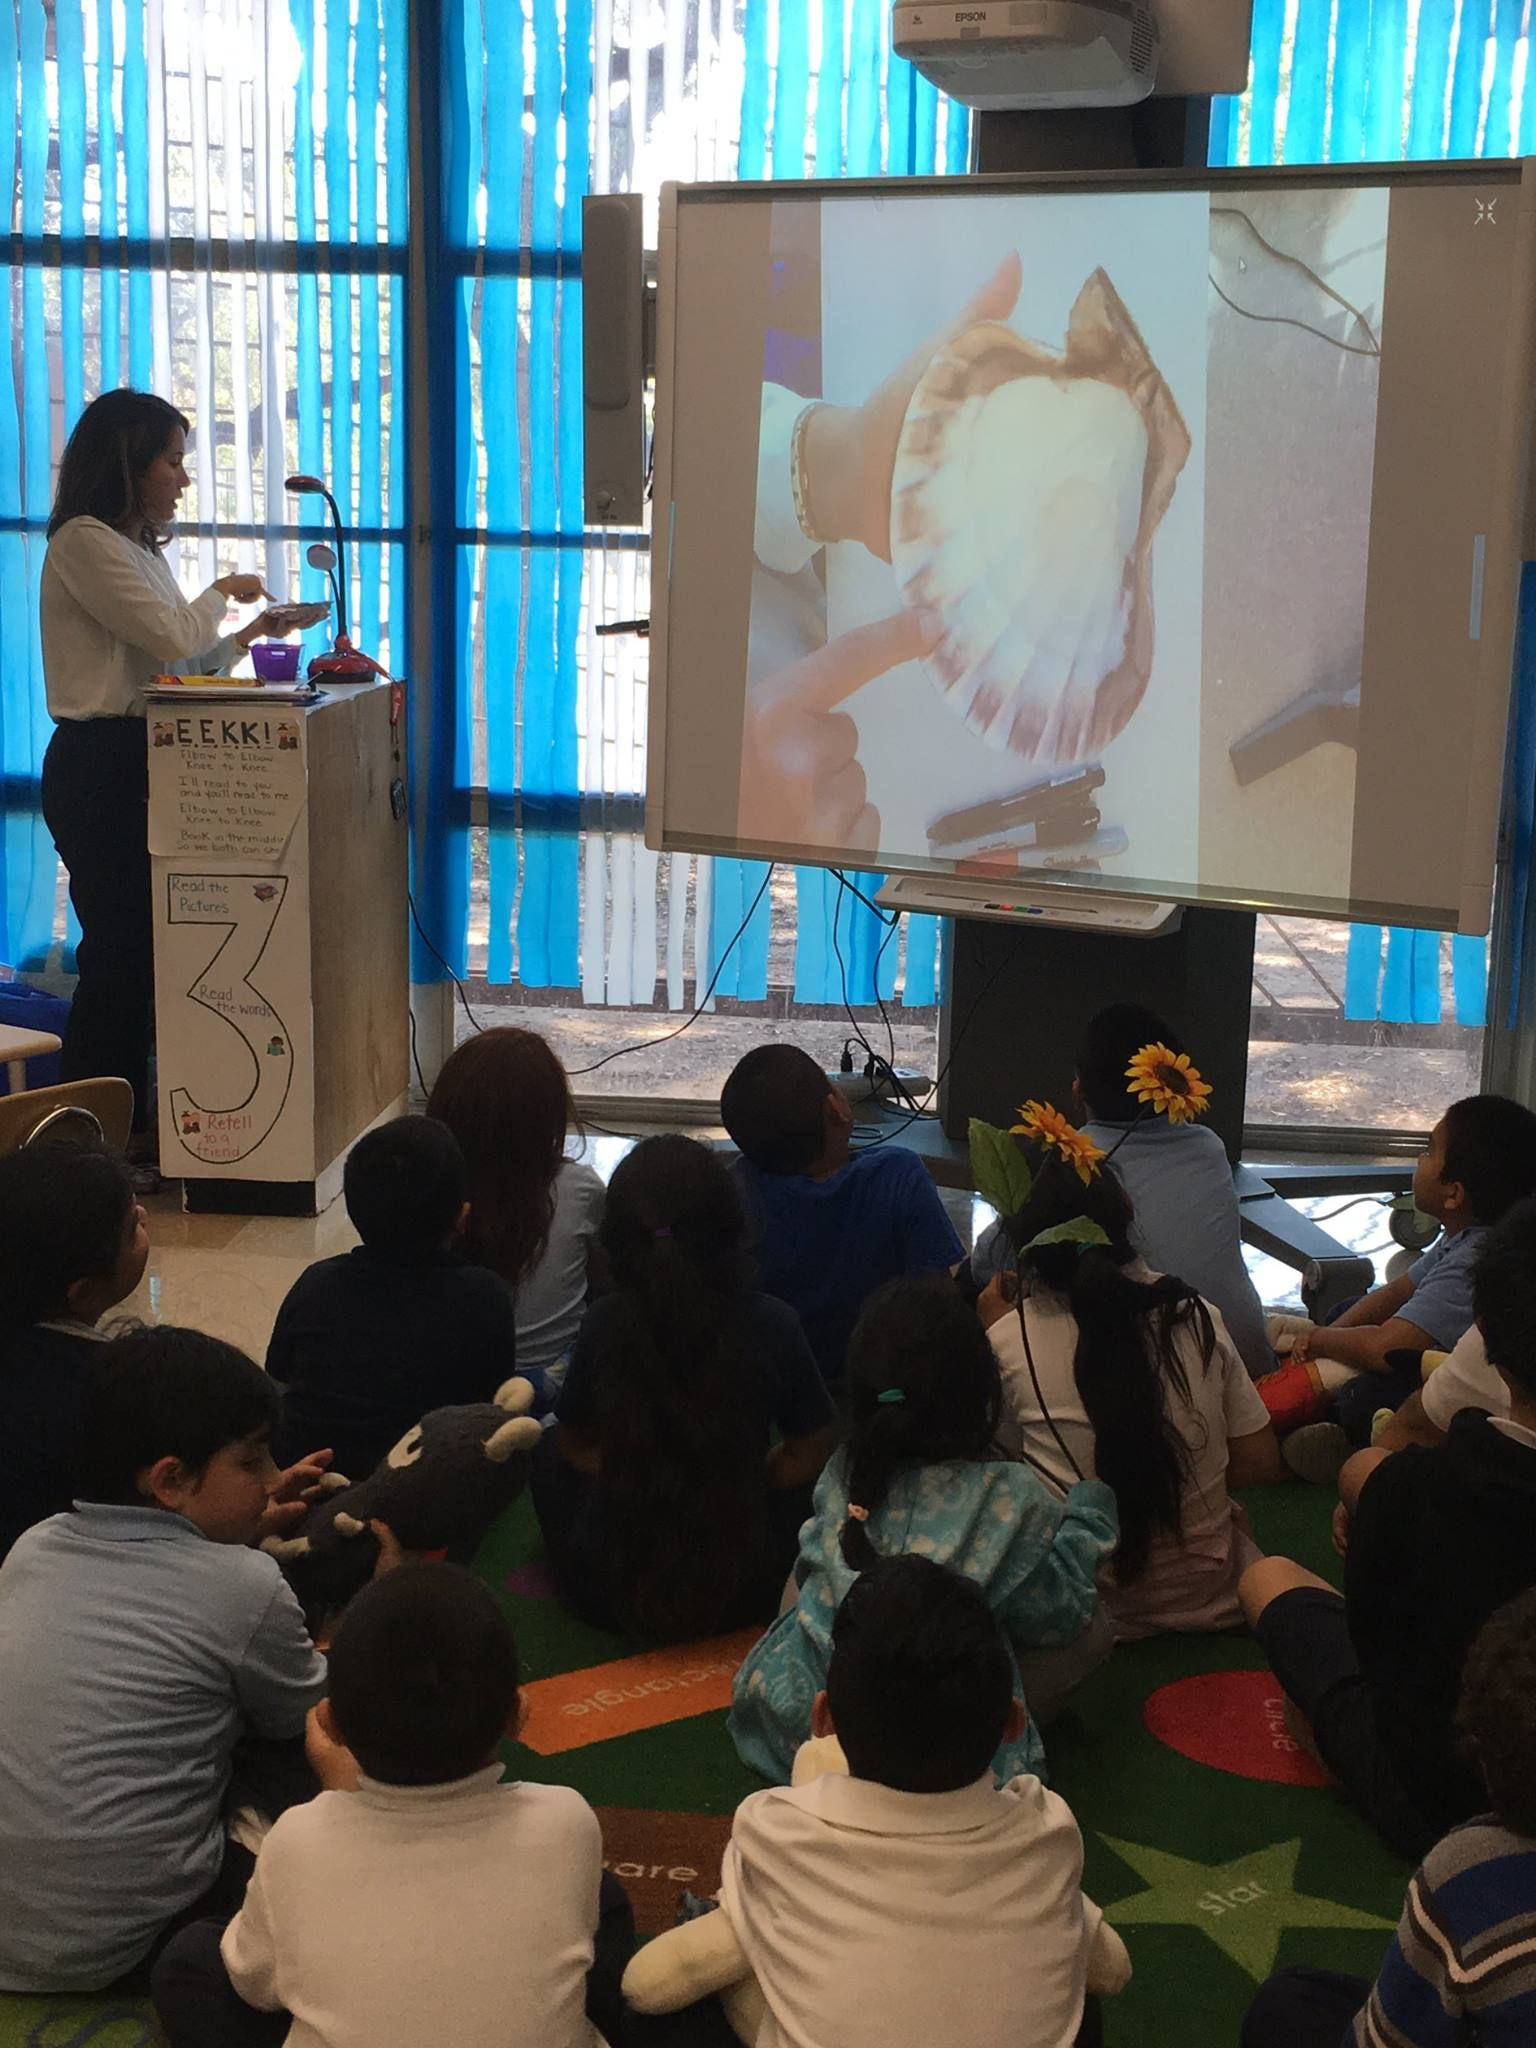 A.L.L. at Northline Elementary